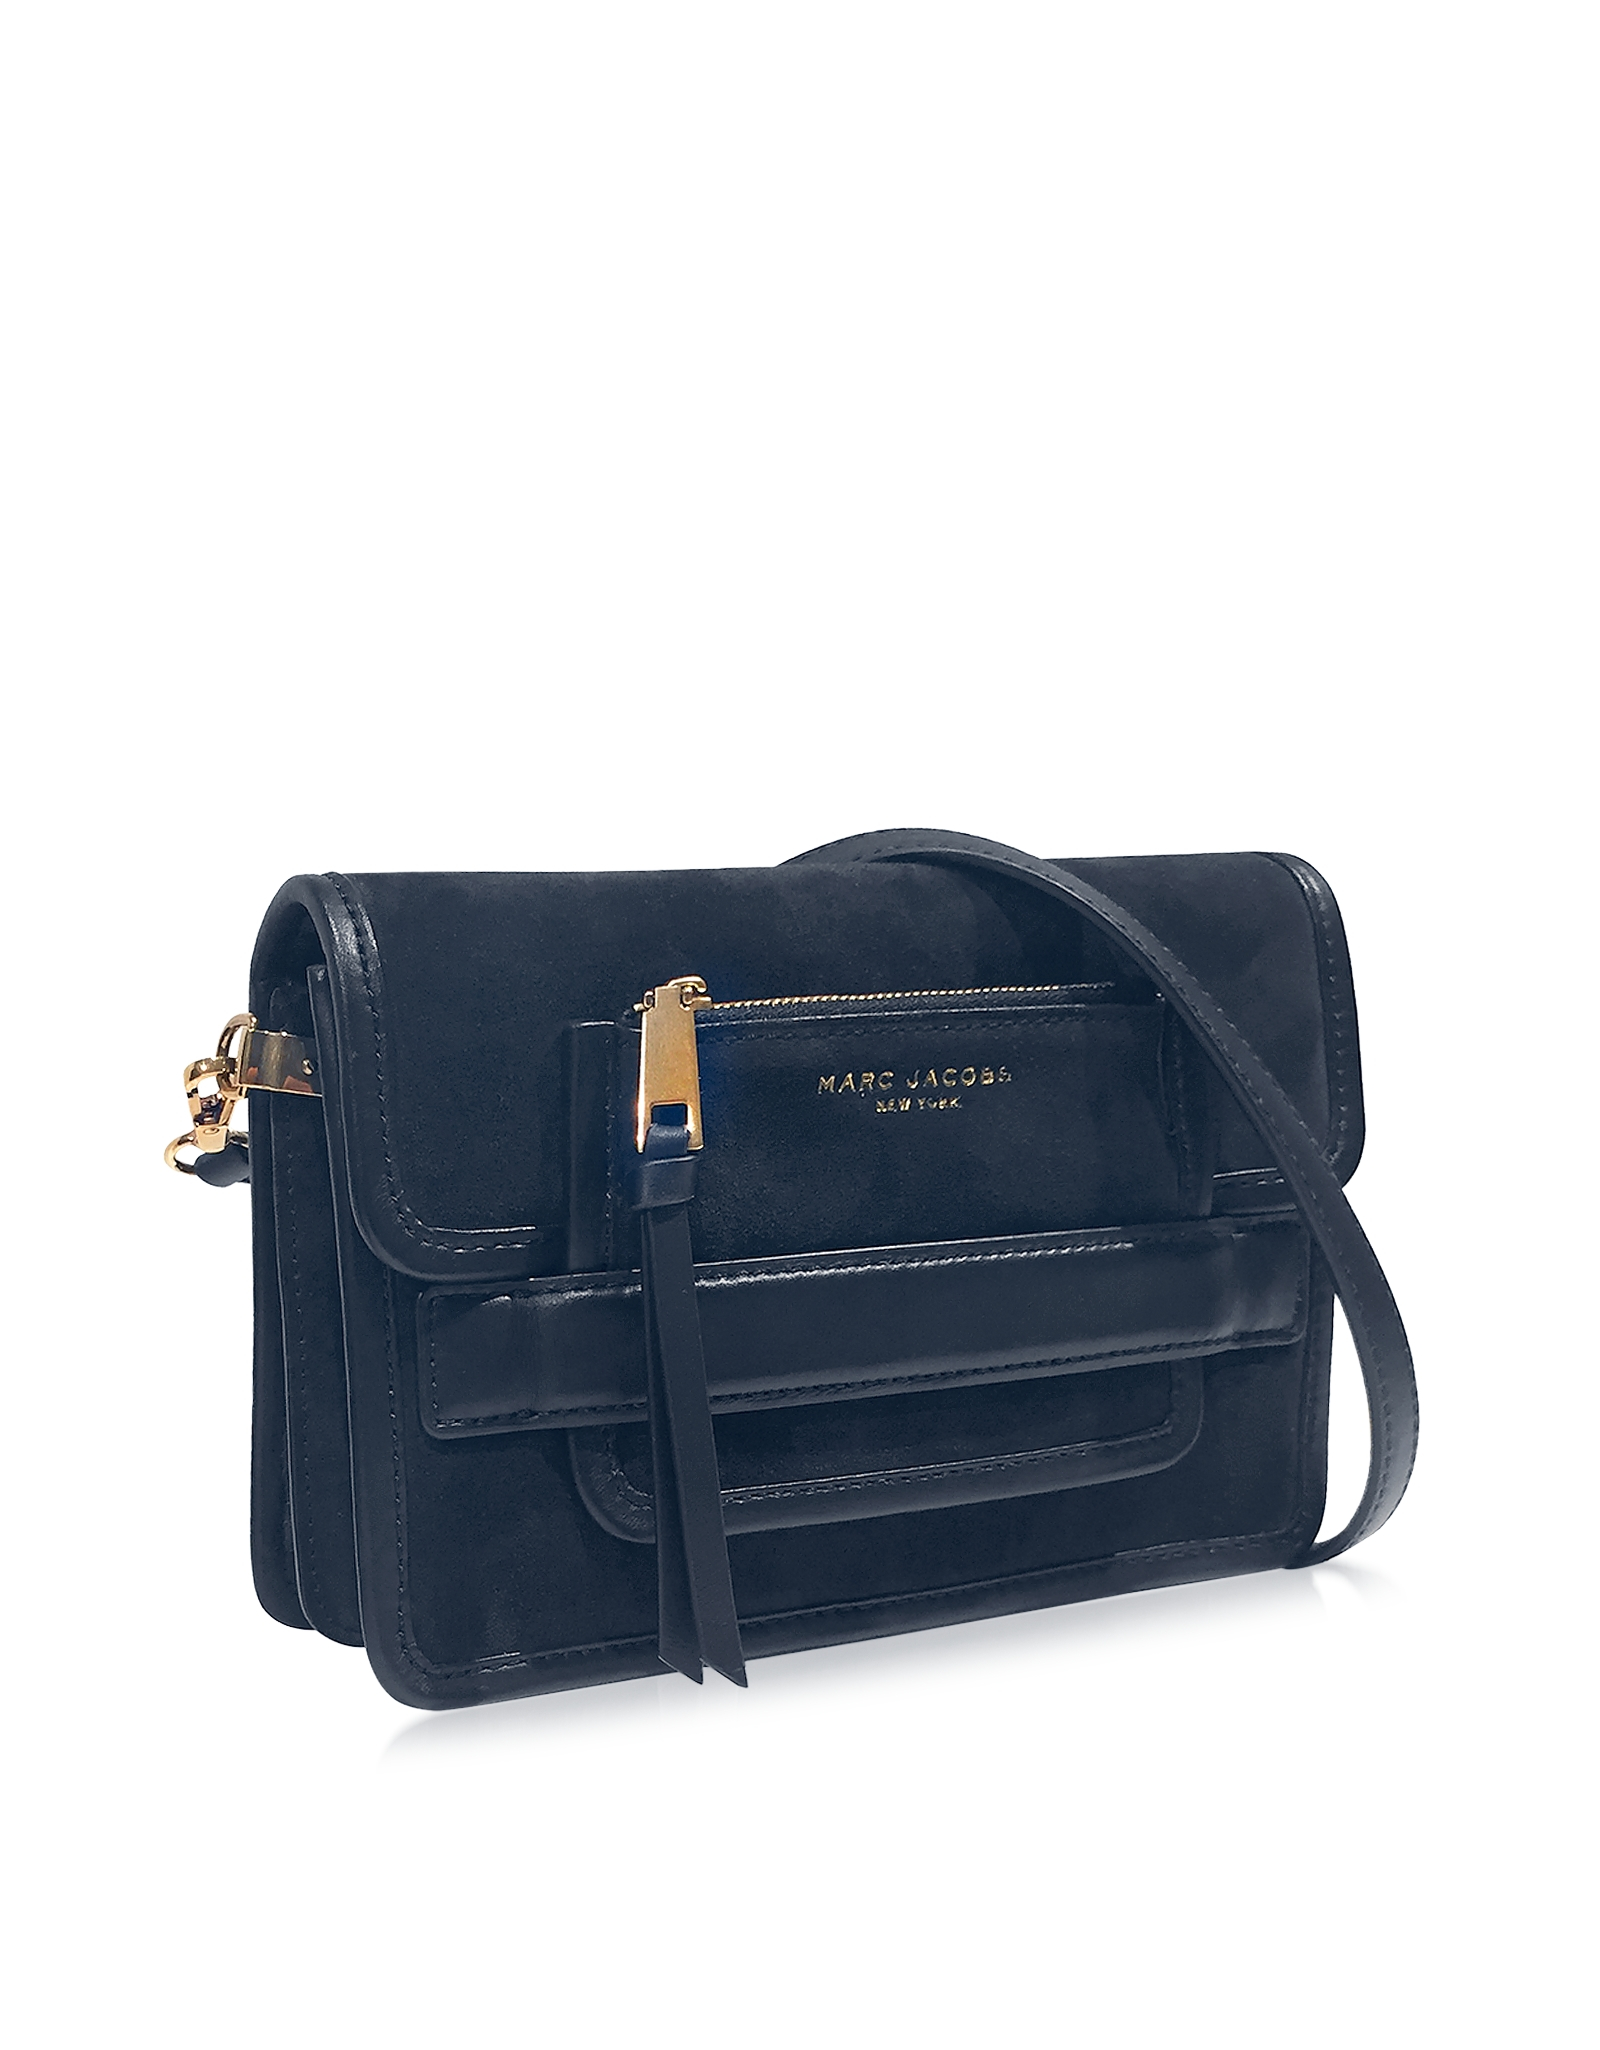 a782fd8d778d Lyst - Marc Jacobs Madison Midnight Blue Suede   Leather Medium ...